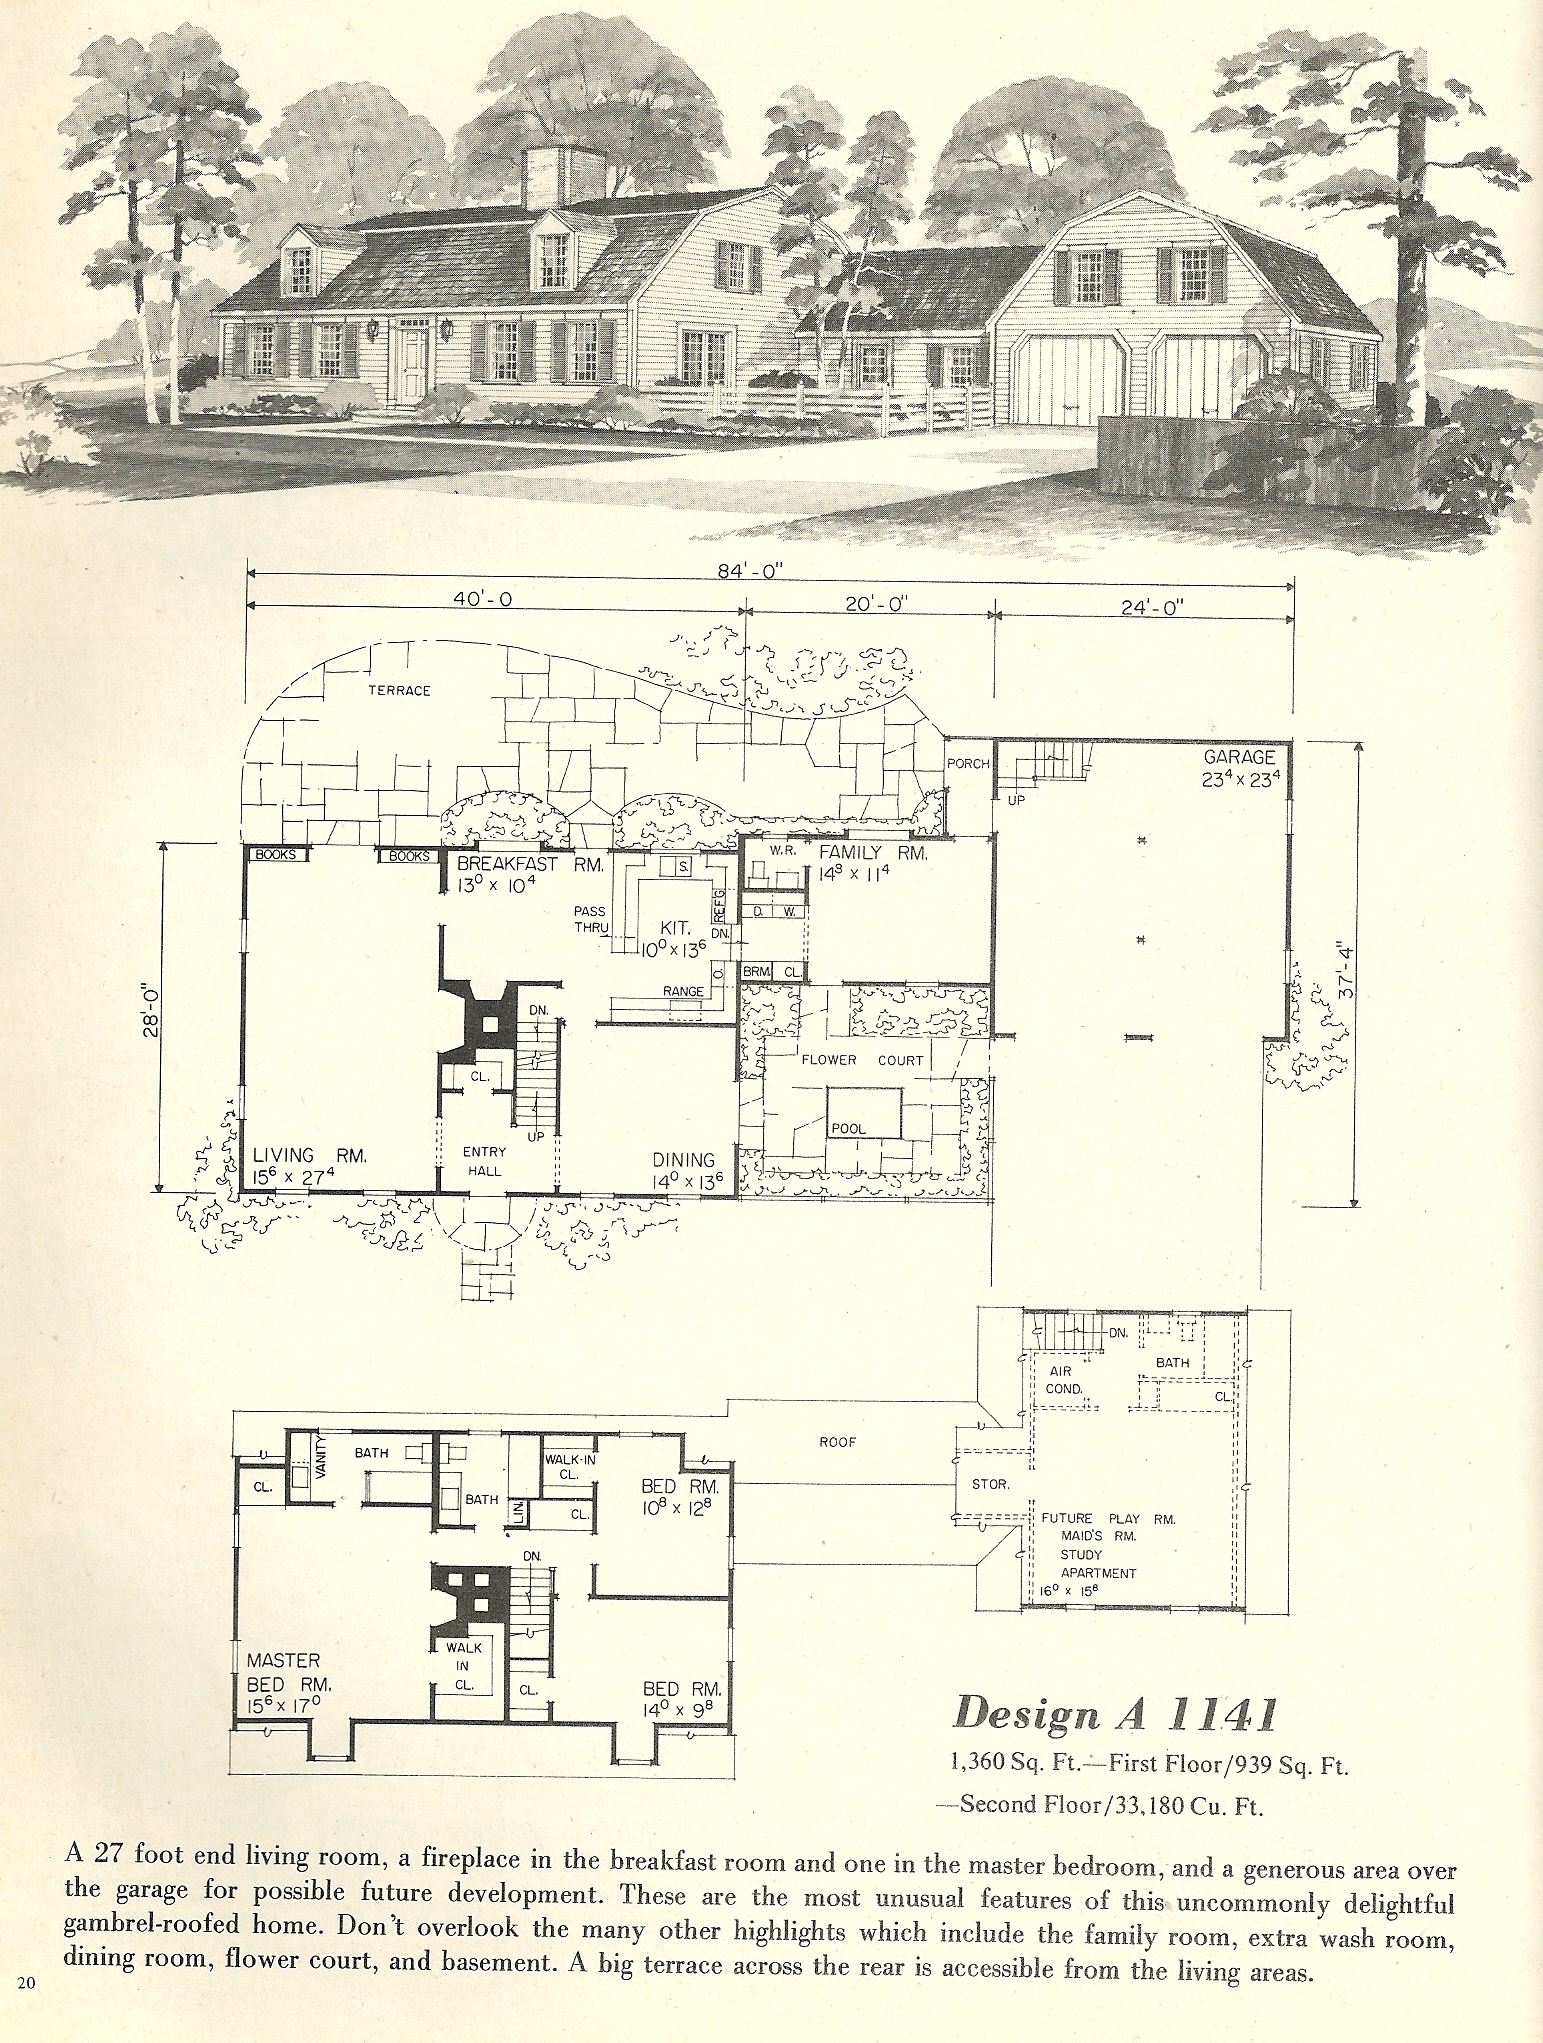 Vintage house plans 1970s new england gambrel roof homes for Vintage home plans